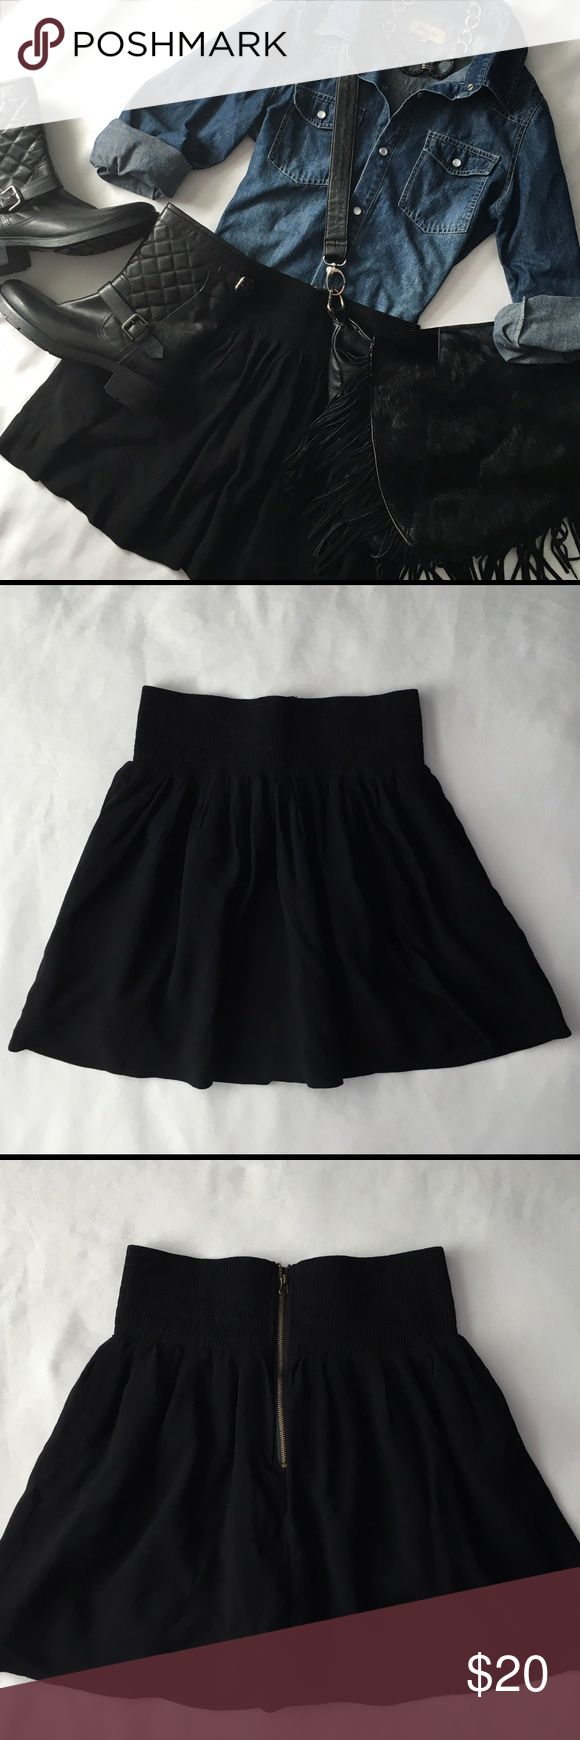 """Black A Line Mini Skirt w Exposed Zip-Like New Flowy black a line mini skirt.  Sits higher up on the natural waistline.  Features an exposed back zipper.  Approx 16.5"""" Super cute!! Bought at a boutique in SOHO.  Excellent condition. 🚫Sorry no trades. Sweet Candy Skirts Mini"""